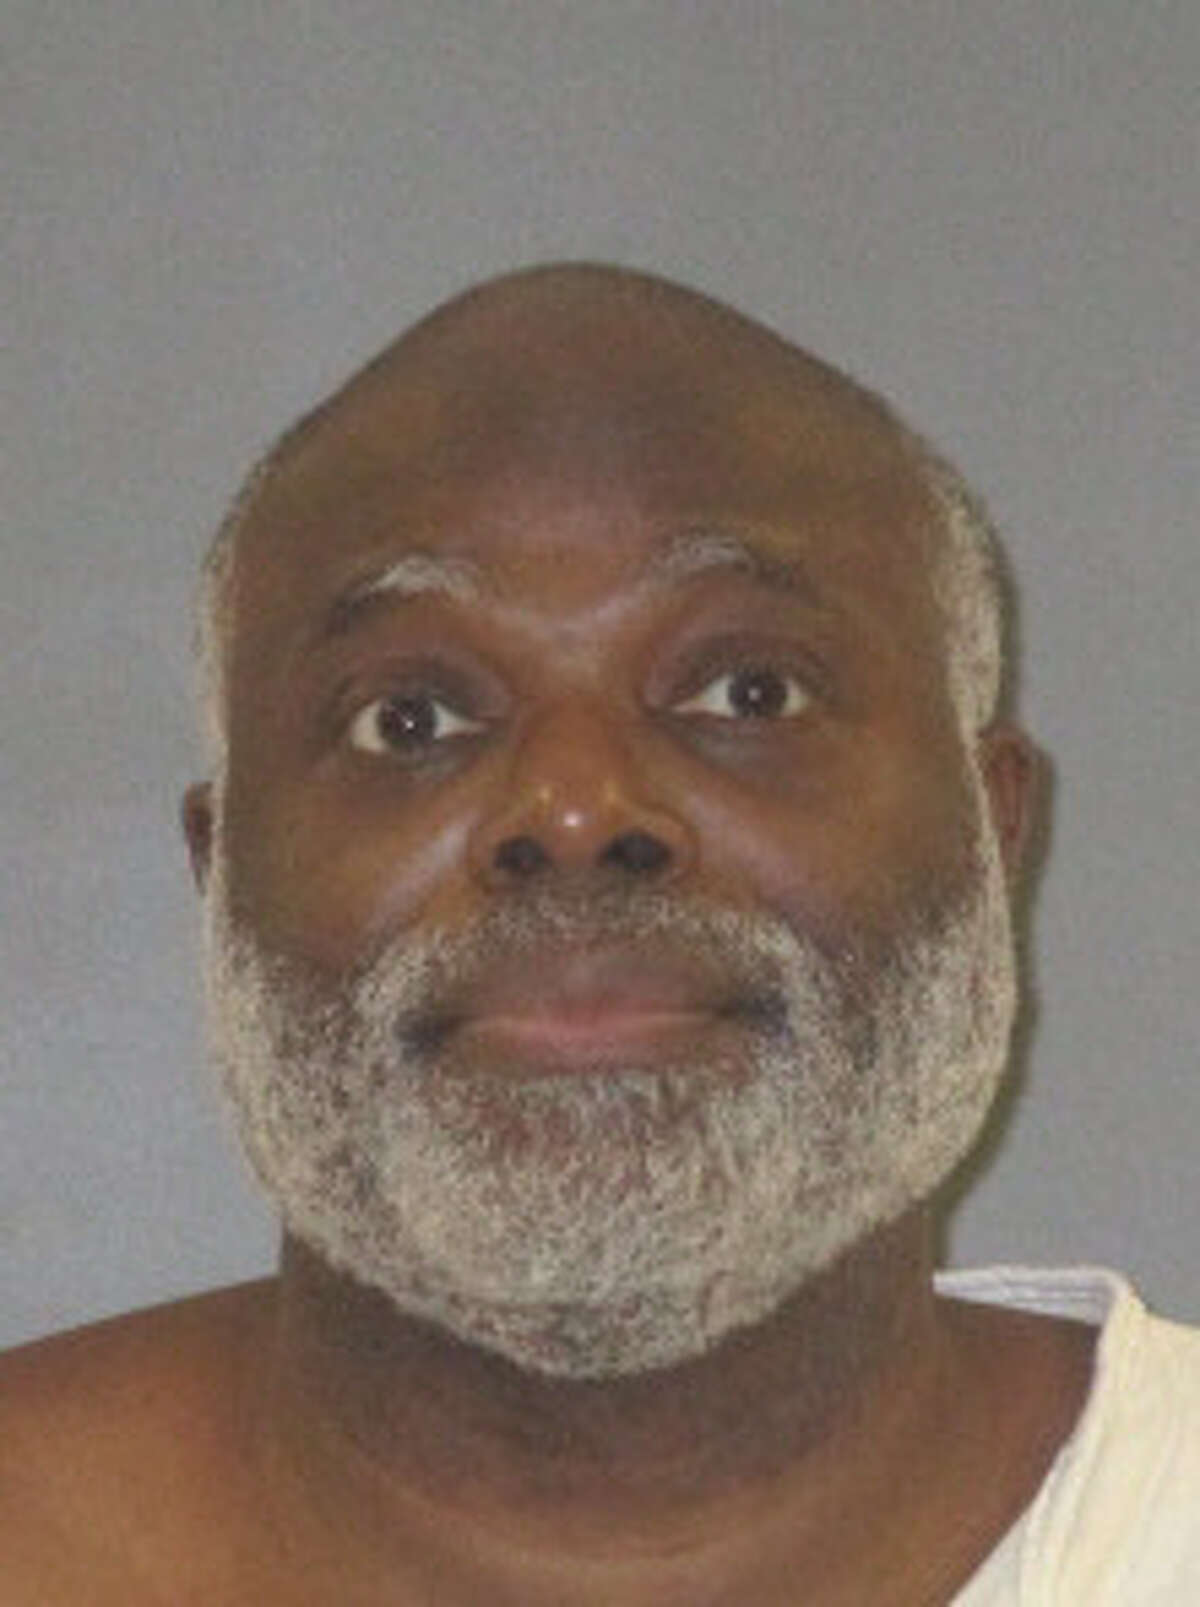 Michael Wayne Norris was resentenced to life in prison after decades on death row.